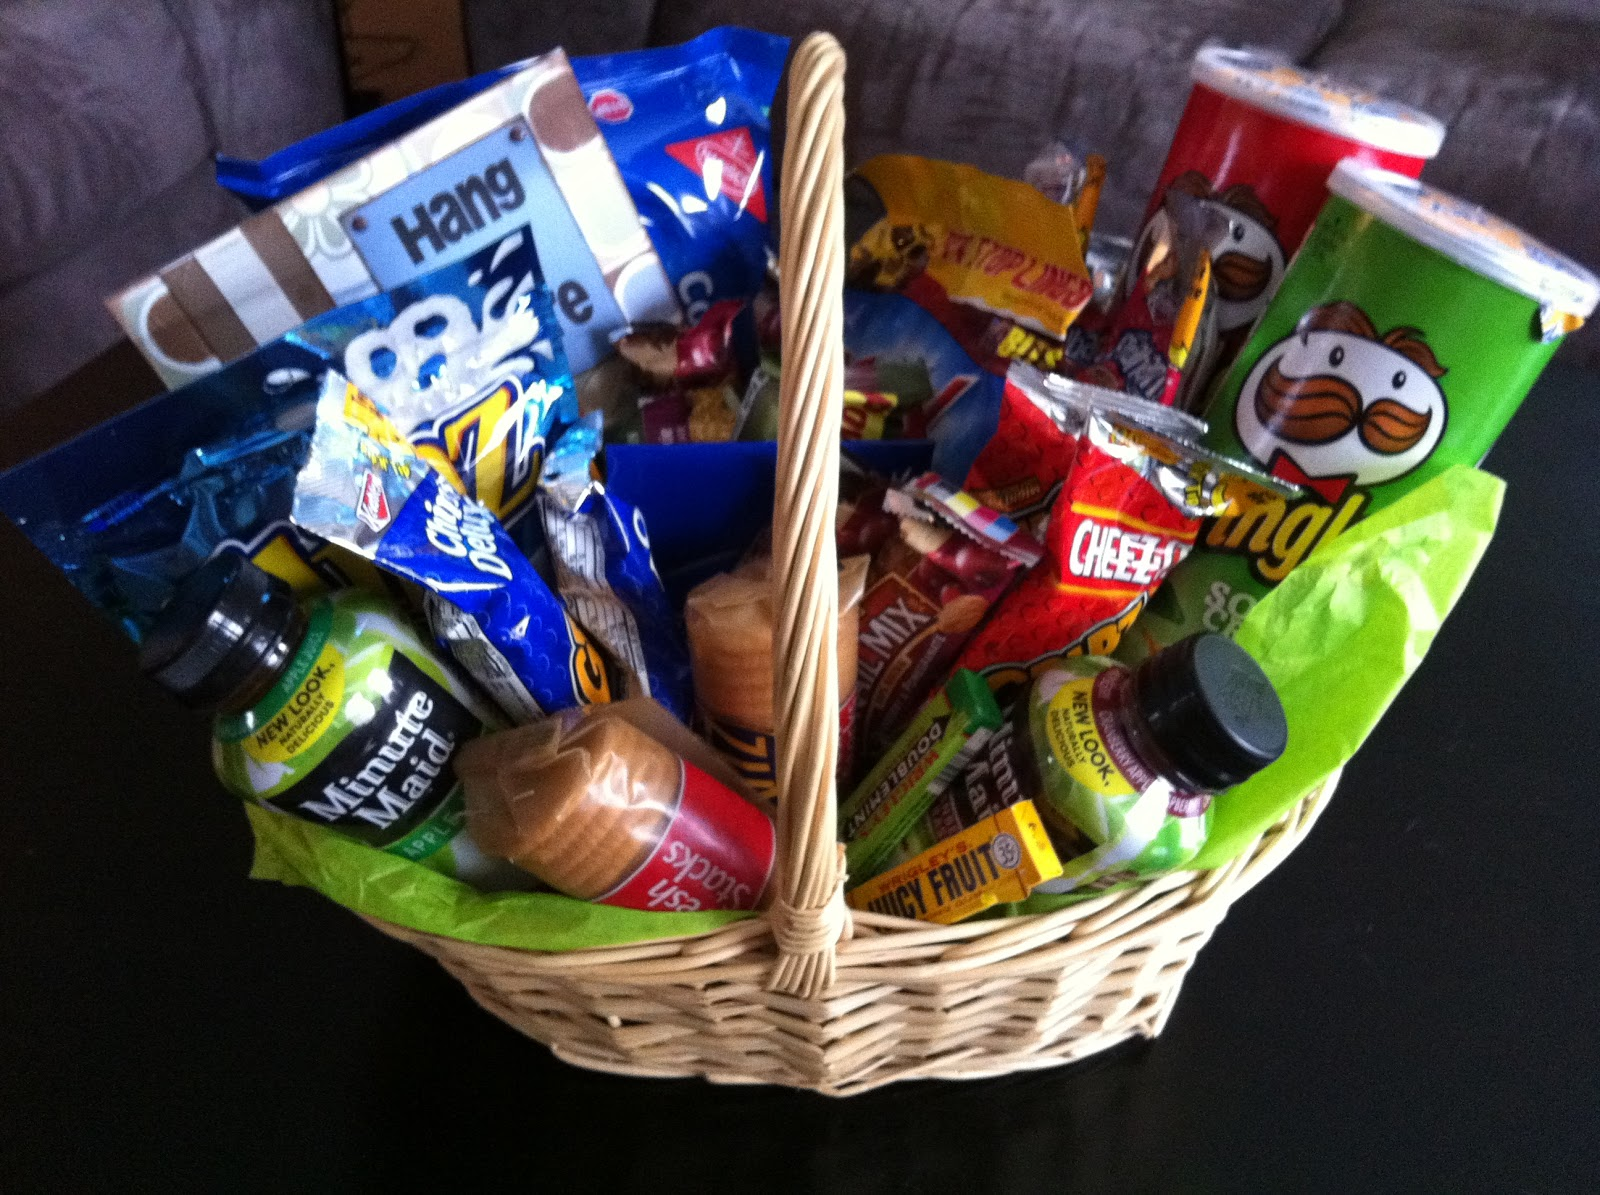 I put together a basket of snacks and a few drinks for this personu0027s hospital room. I know they are having a hard time with food and will likely not eat one ... & Utah County Mom: Hospital gift